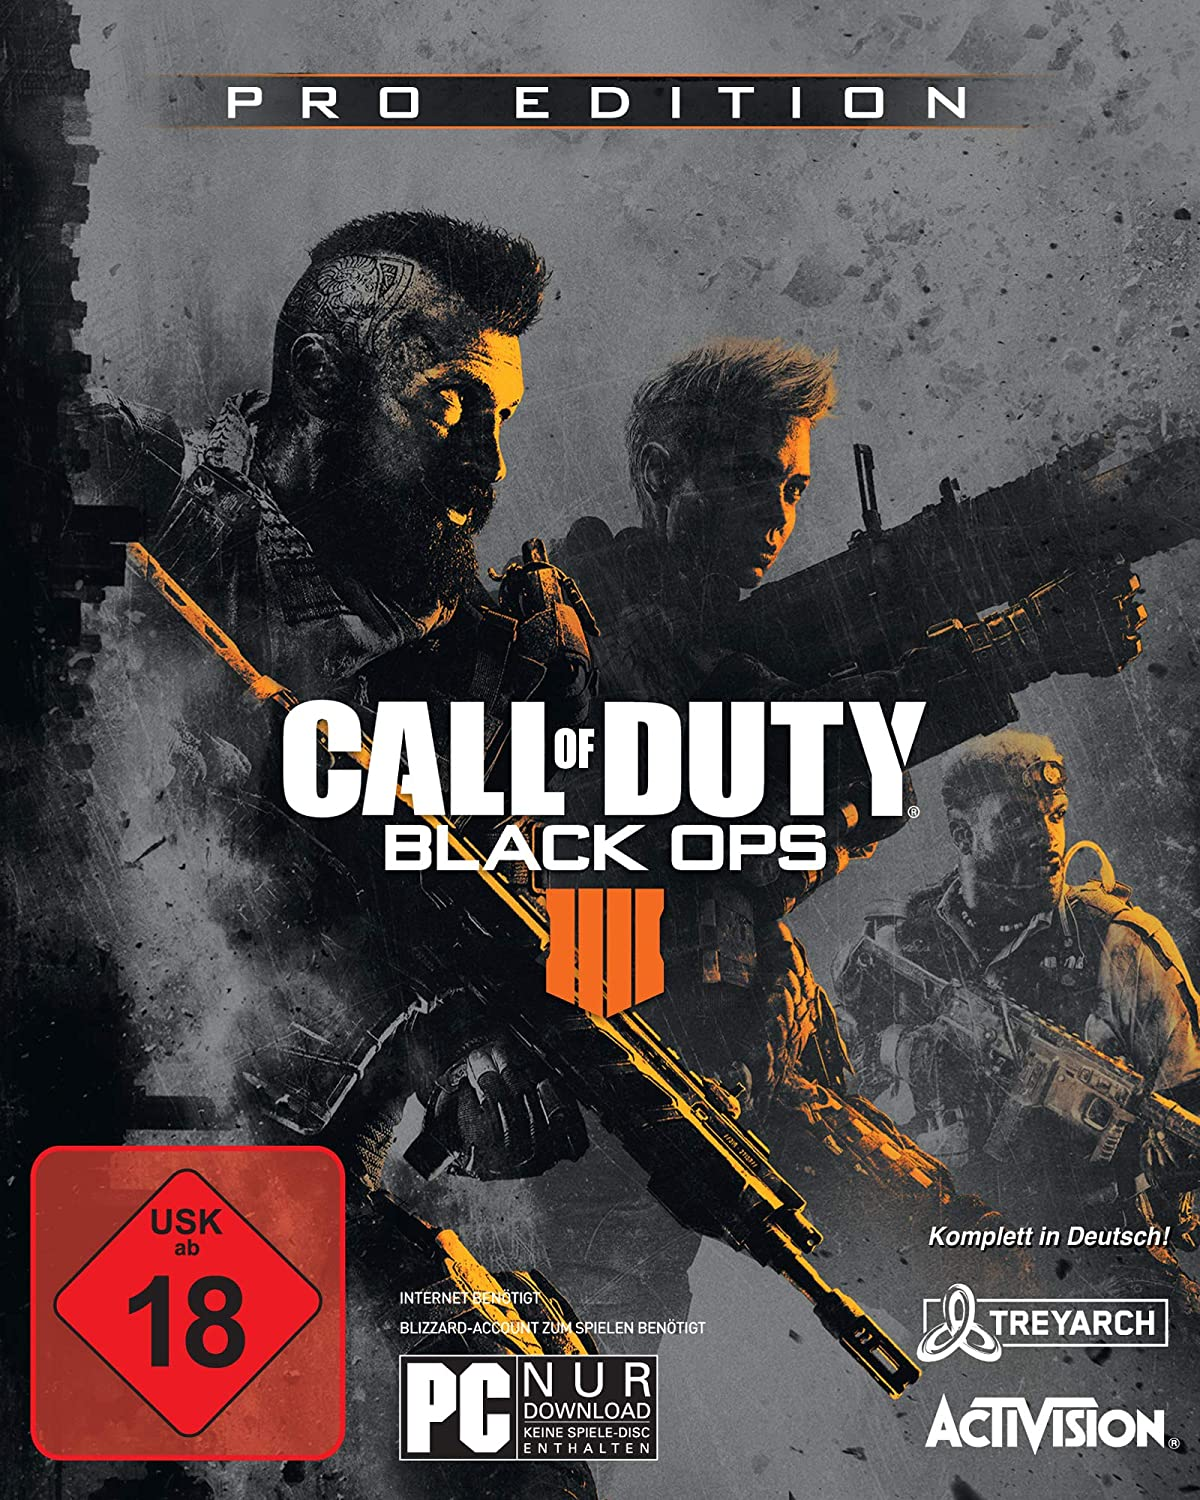 Call of Duty  schwarz Ops 4 - Pro Edition [PC]